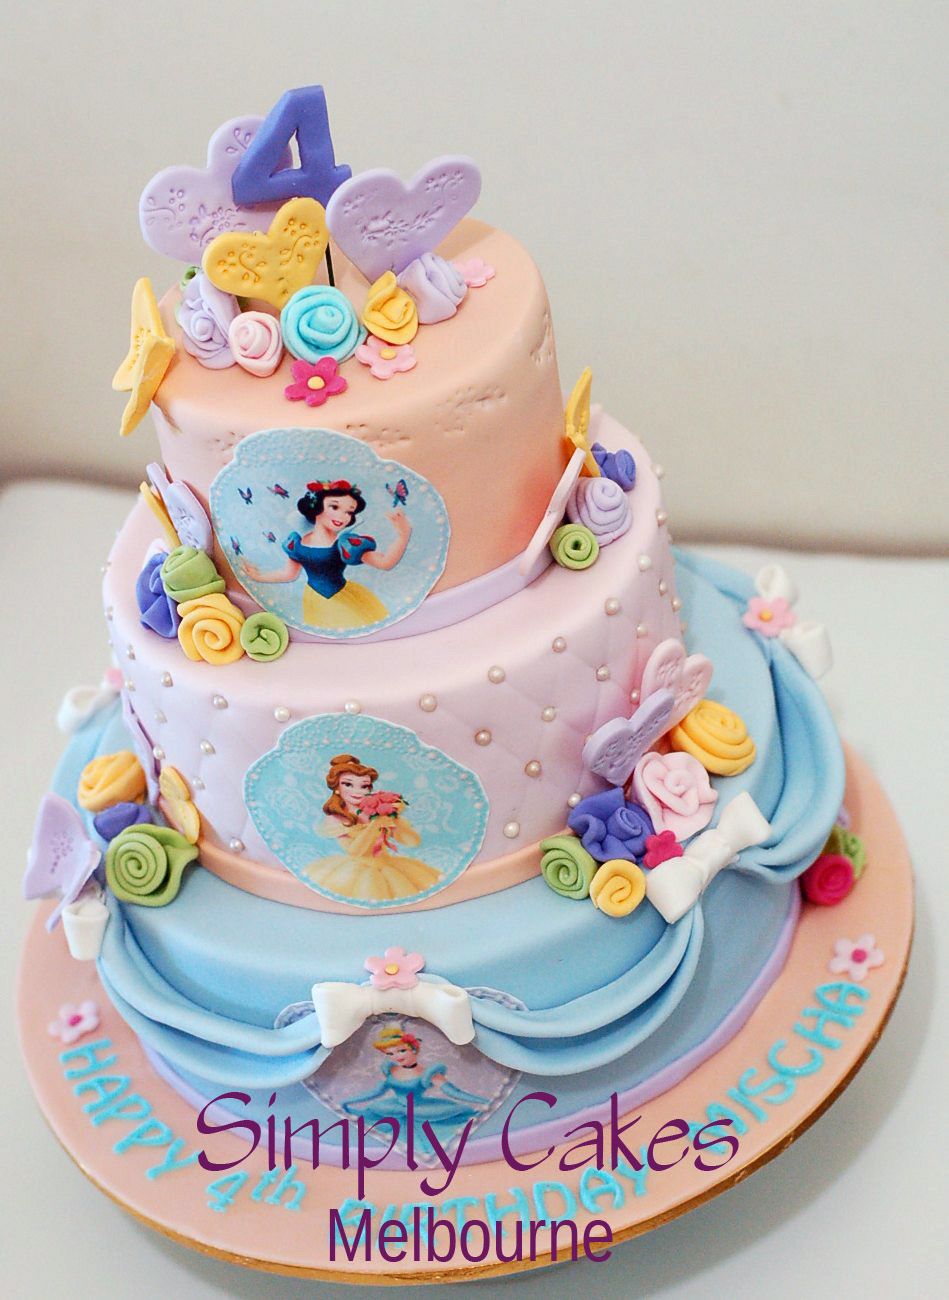 Disney Cake Designs Princesses : Simply Cakes Melbourne: Disney princess Cake